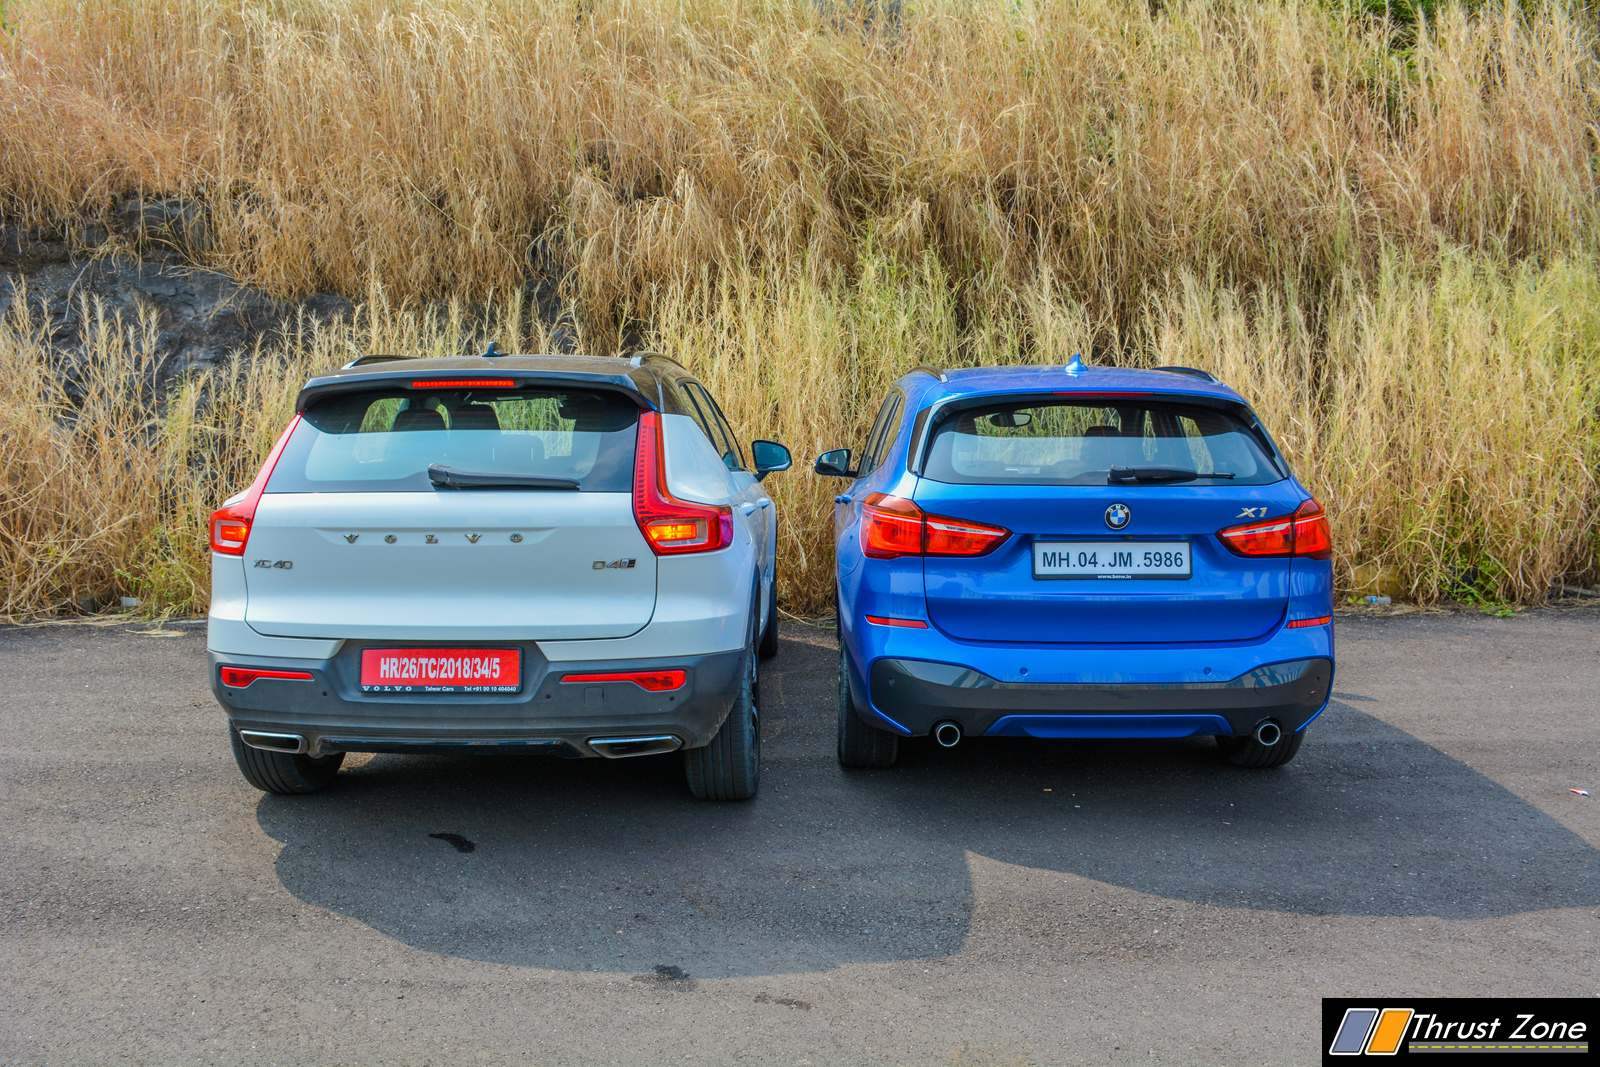 https://www.thrustzone.com/wp-content/uploads/2018/11/BMW-X1-vs-Volvo-XC40-Diesel-Comparison-Review-Shootout-17.jpg